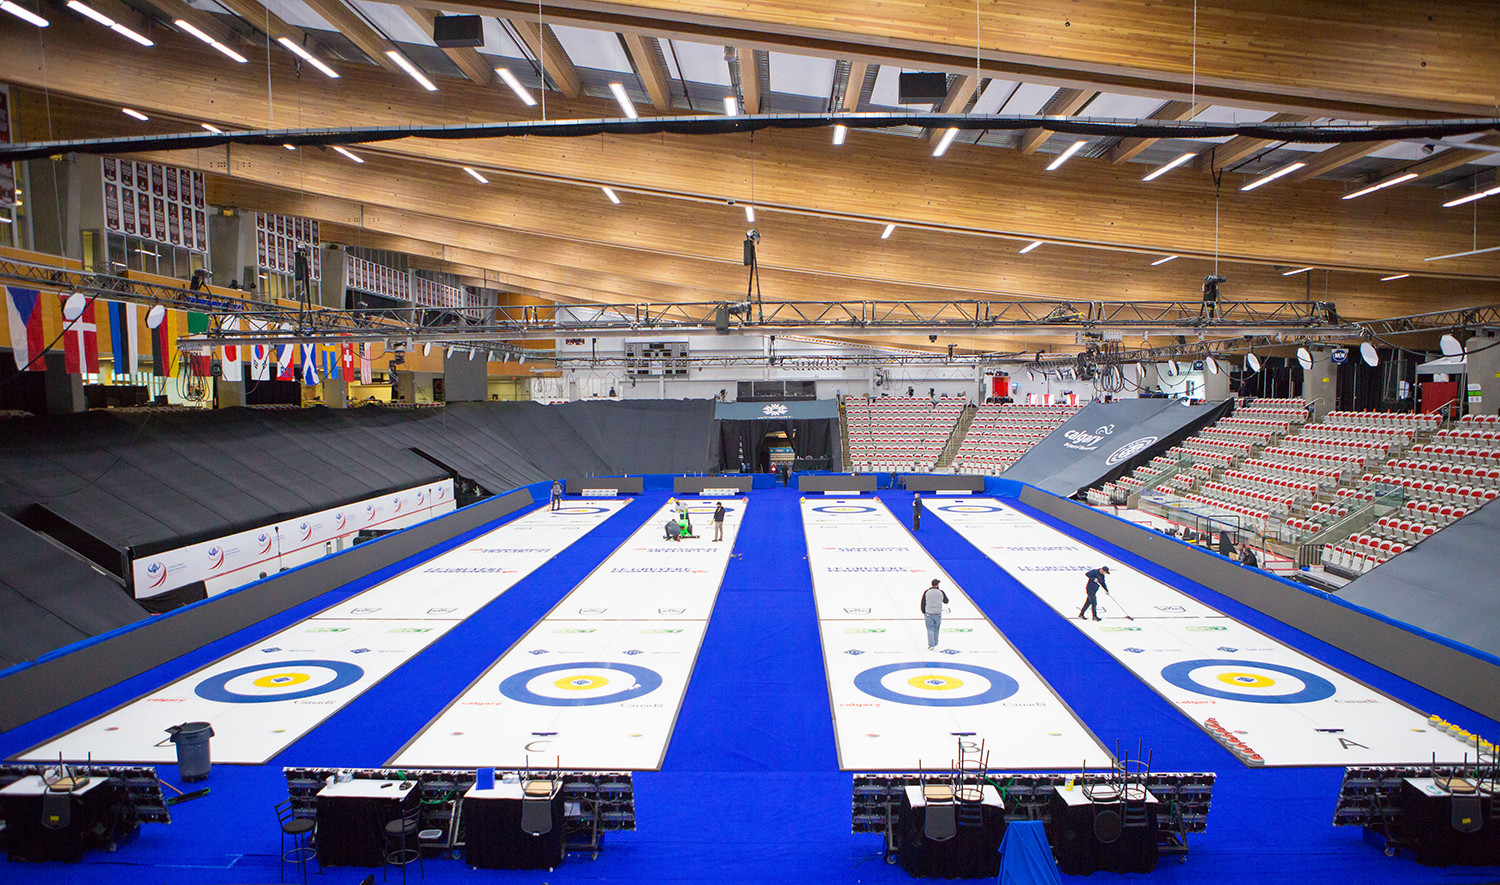 Session postponed at World Women's Curling Championship after positive coronavirus cases among broadcasters